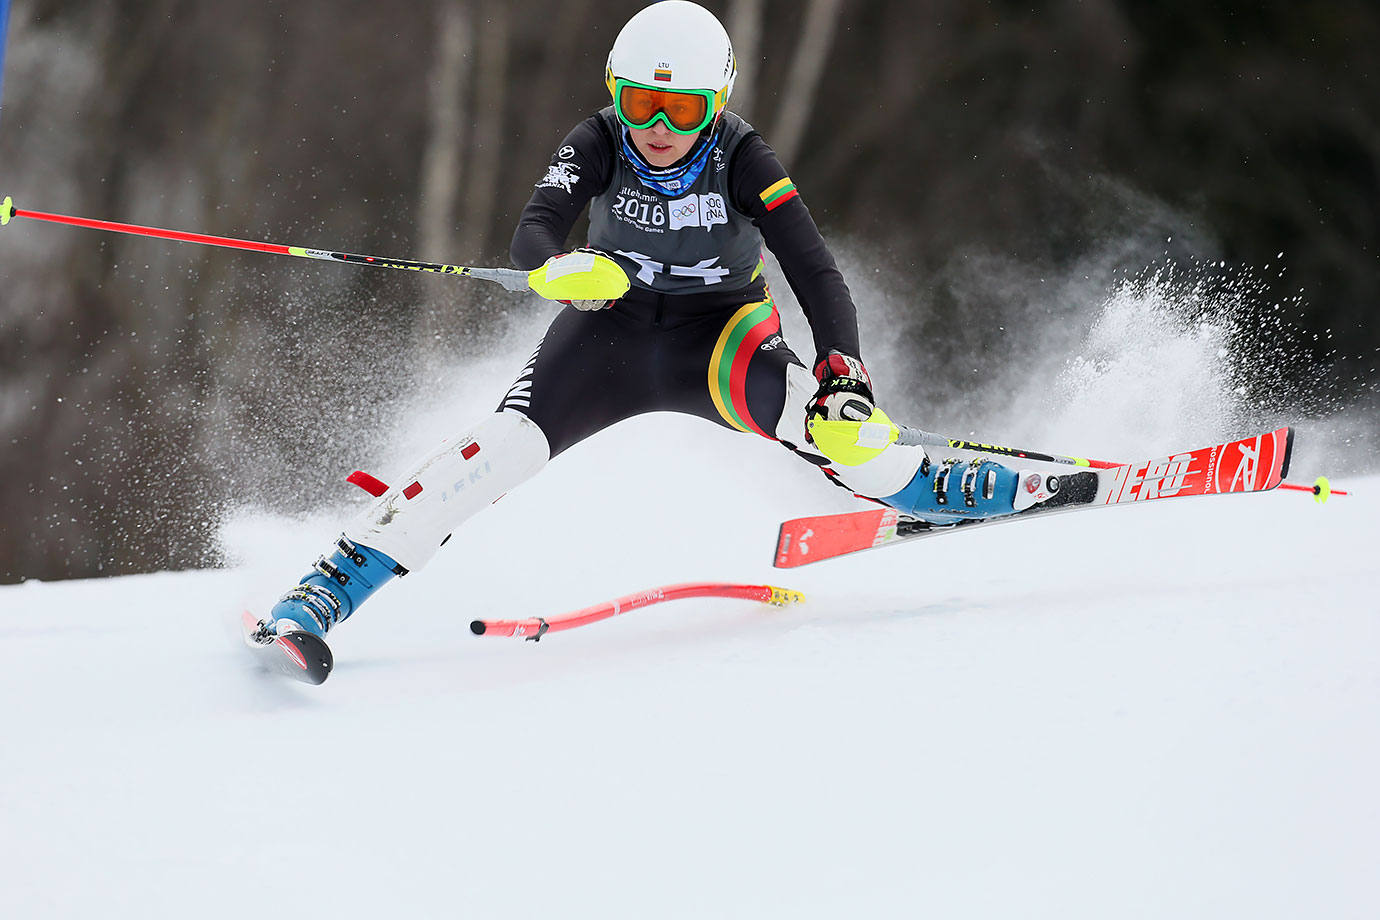 Egle Augustaityte (LTU) competes in the Alpine Skiing Ladies' Slalom at the Hafjell Olympic Slope on Feb. 18, 2016 during the Winter Youth Olympic Games in Lillehammer, Norway.